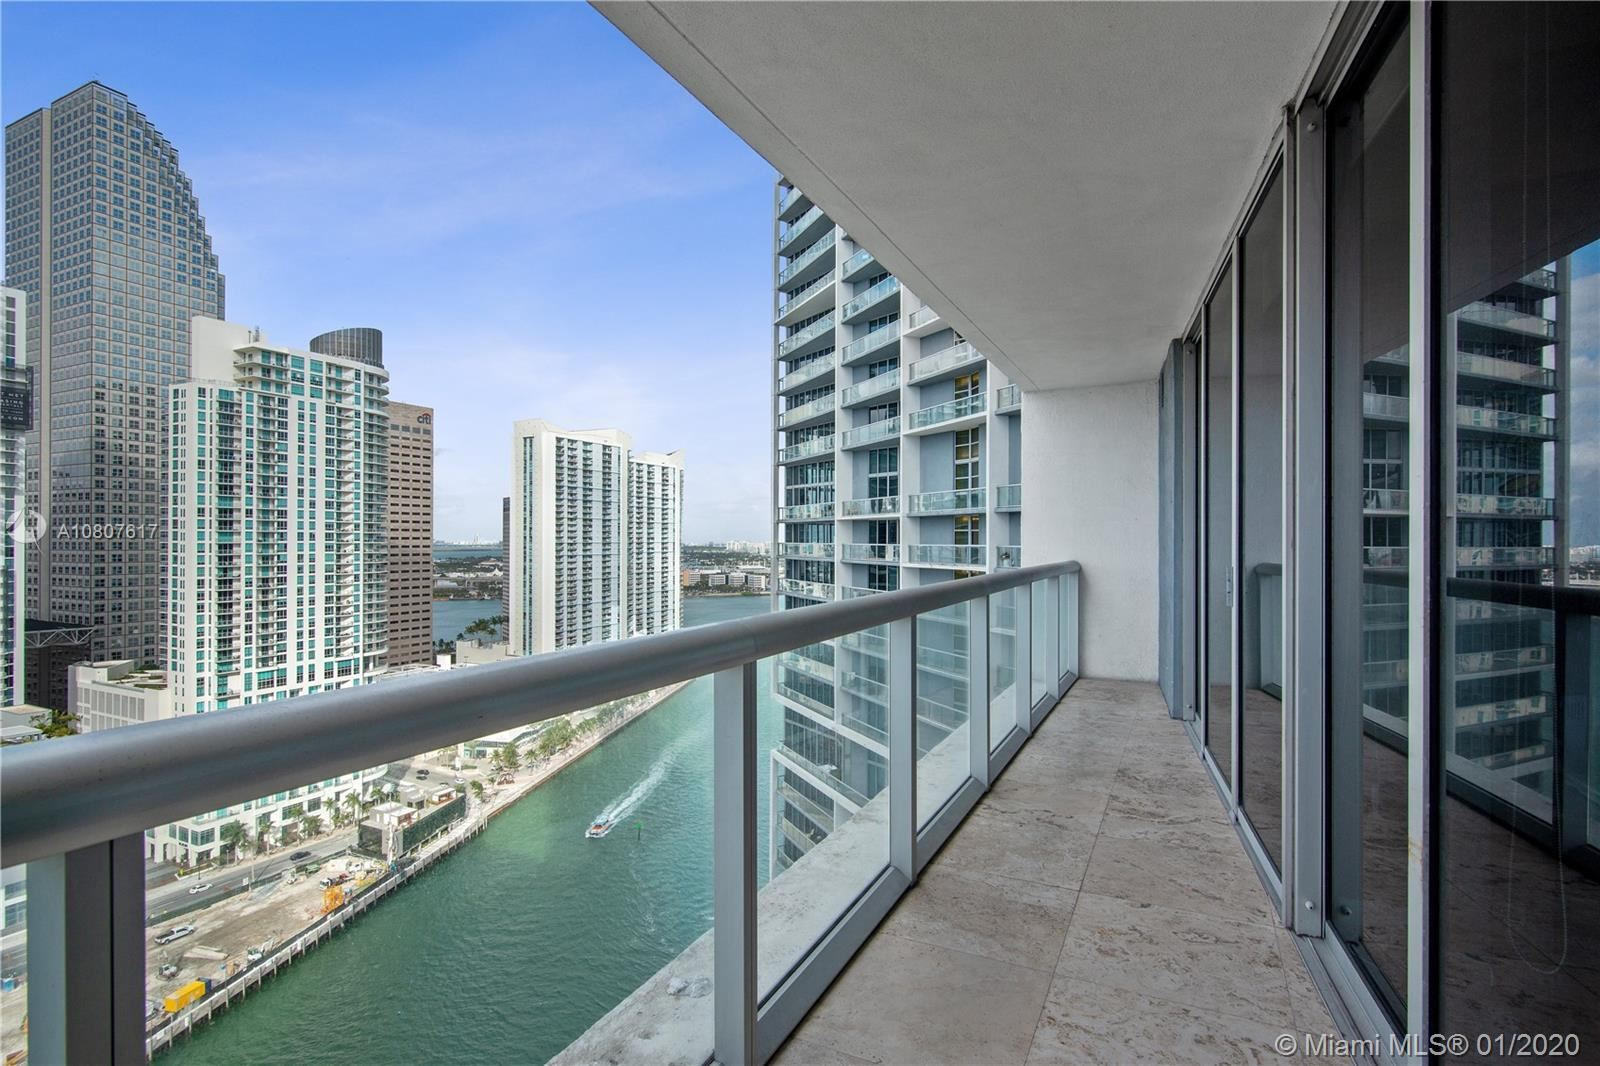 475 Brickell Ave #2715, Miami, FL 33131 - #: A10807617